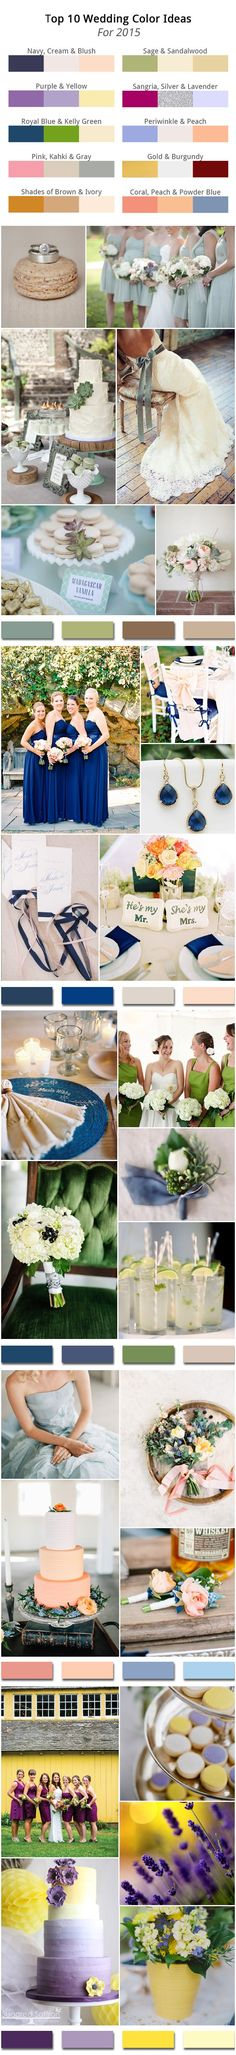 Top 10 Wedding Color Ideas for 2015 Trends #elegantweddinginvites